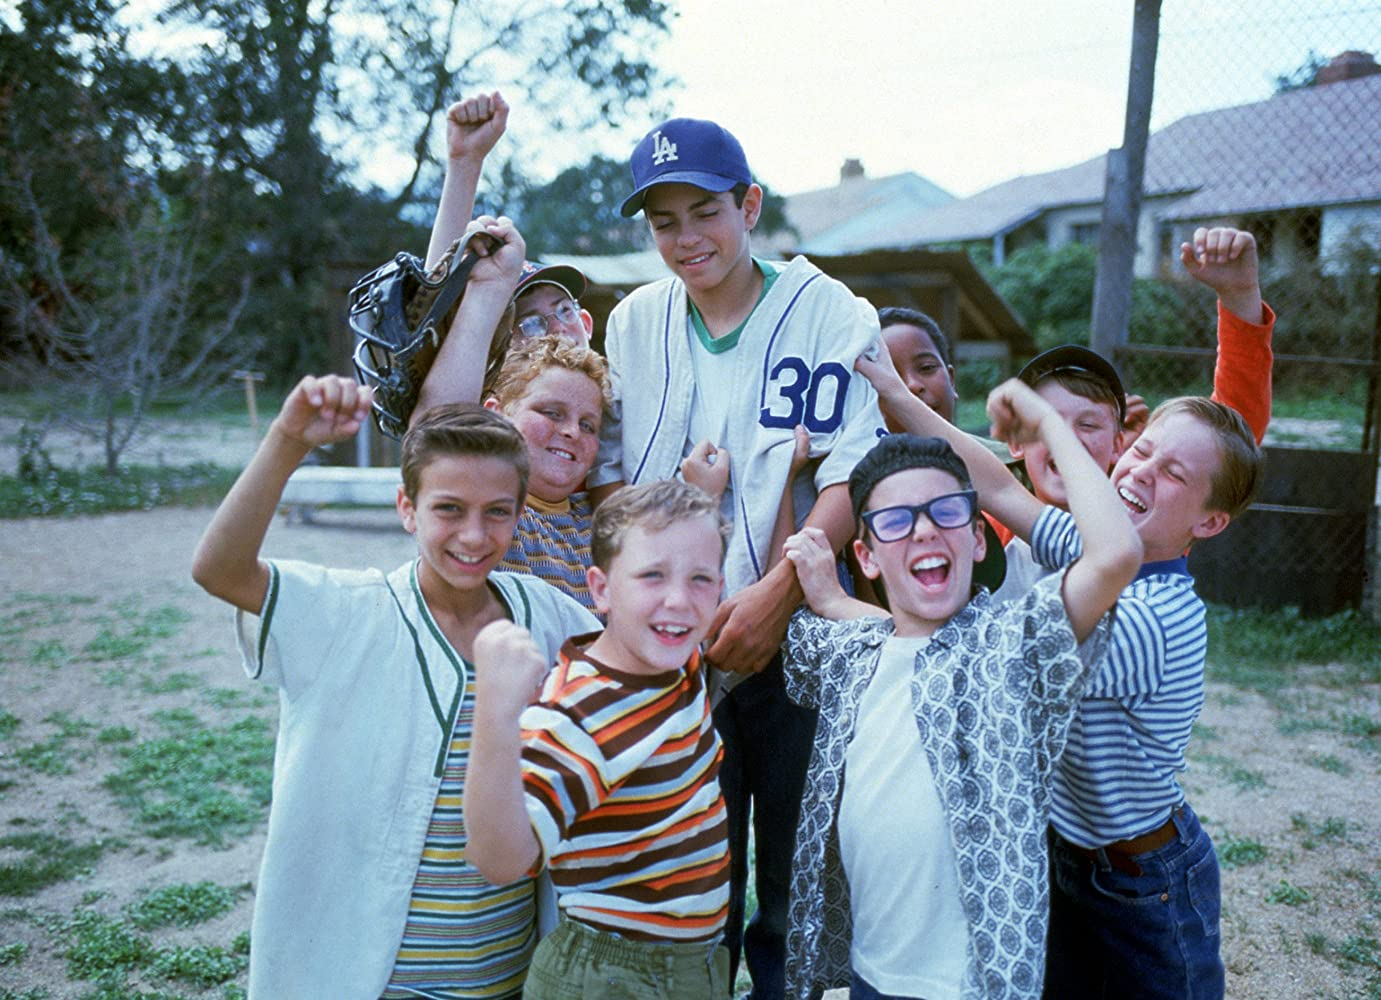 28 2 20 Home Run-Hitting Facts About The 1993 Film The Sandlot